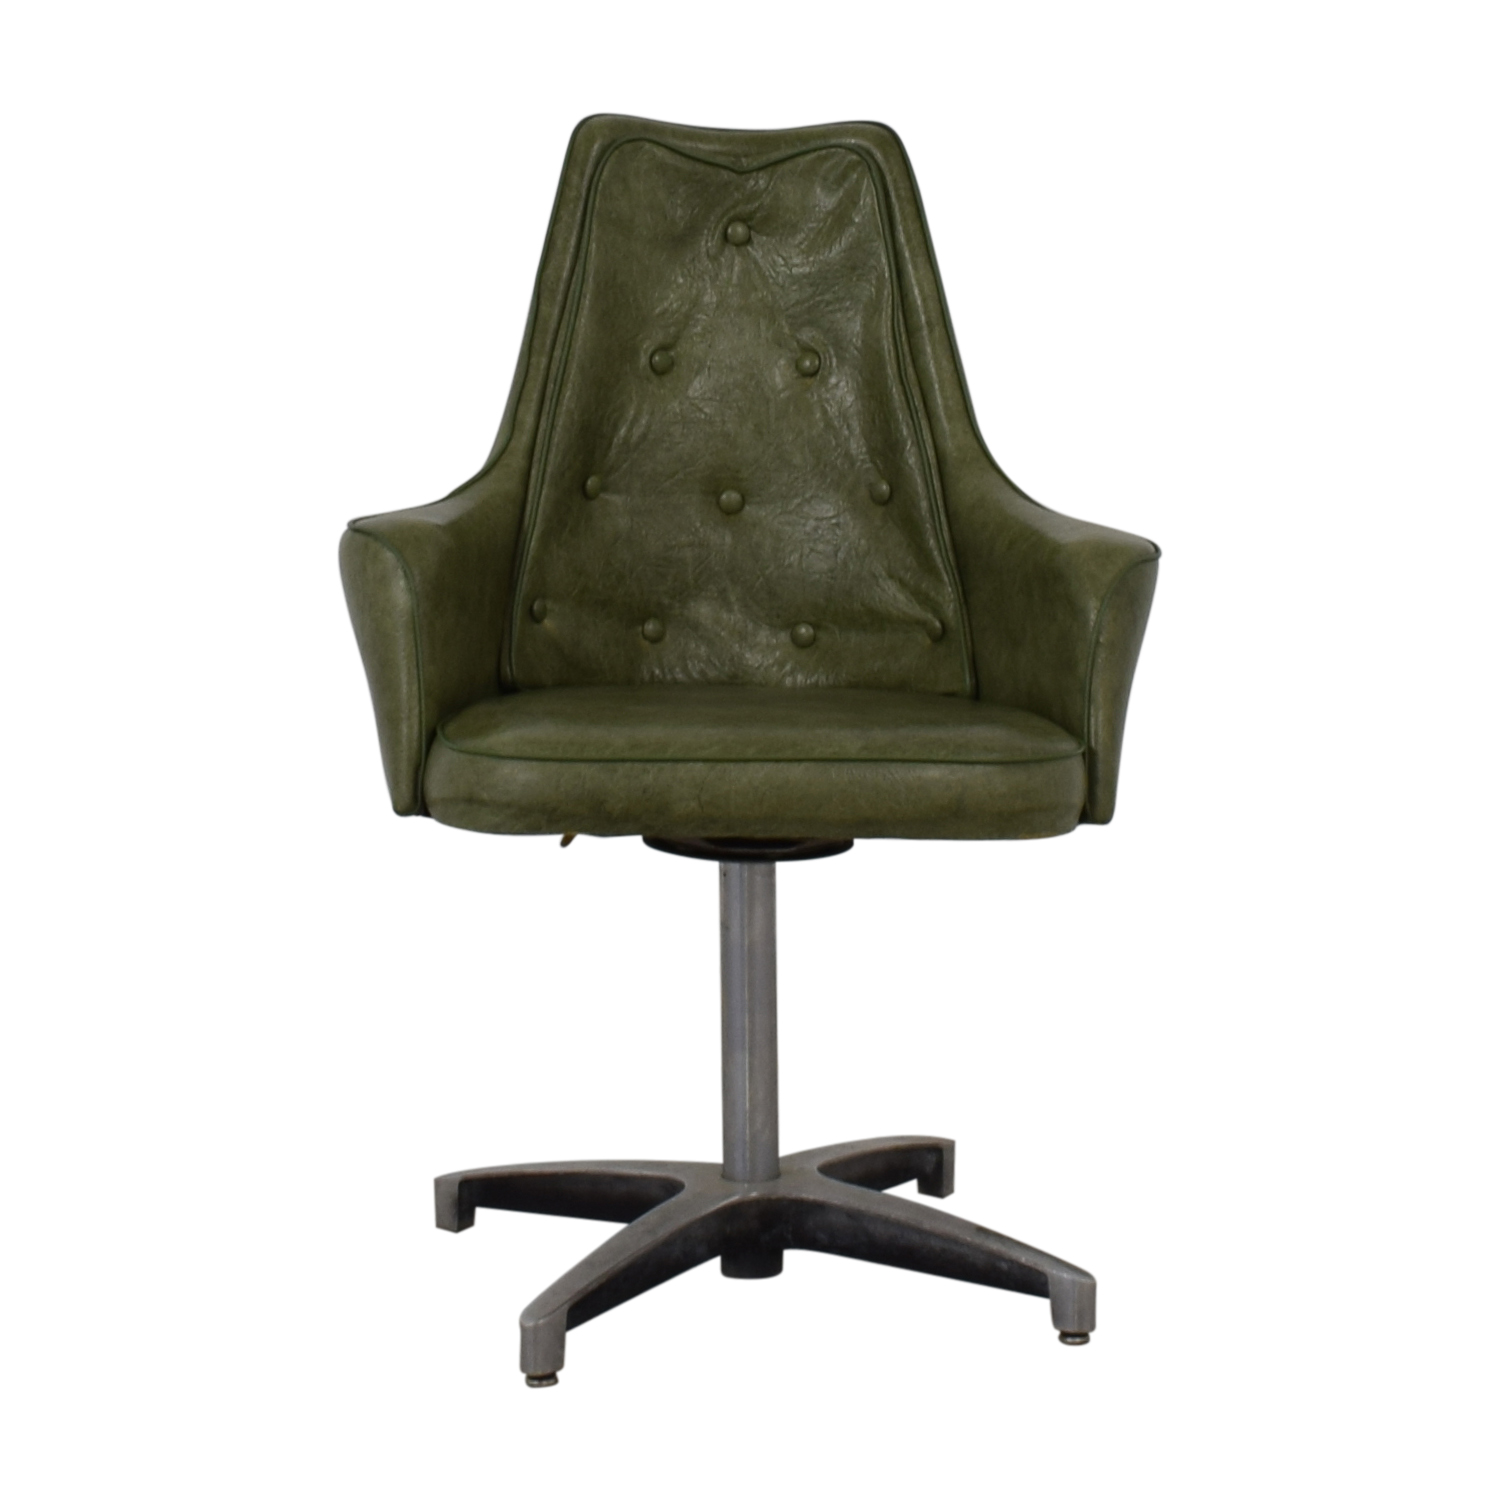 buy Spartan Chrome Furniture Green Leather Chair Spartan Chrome Furniture